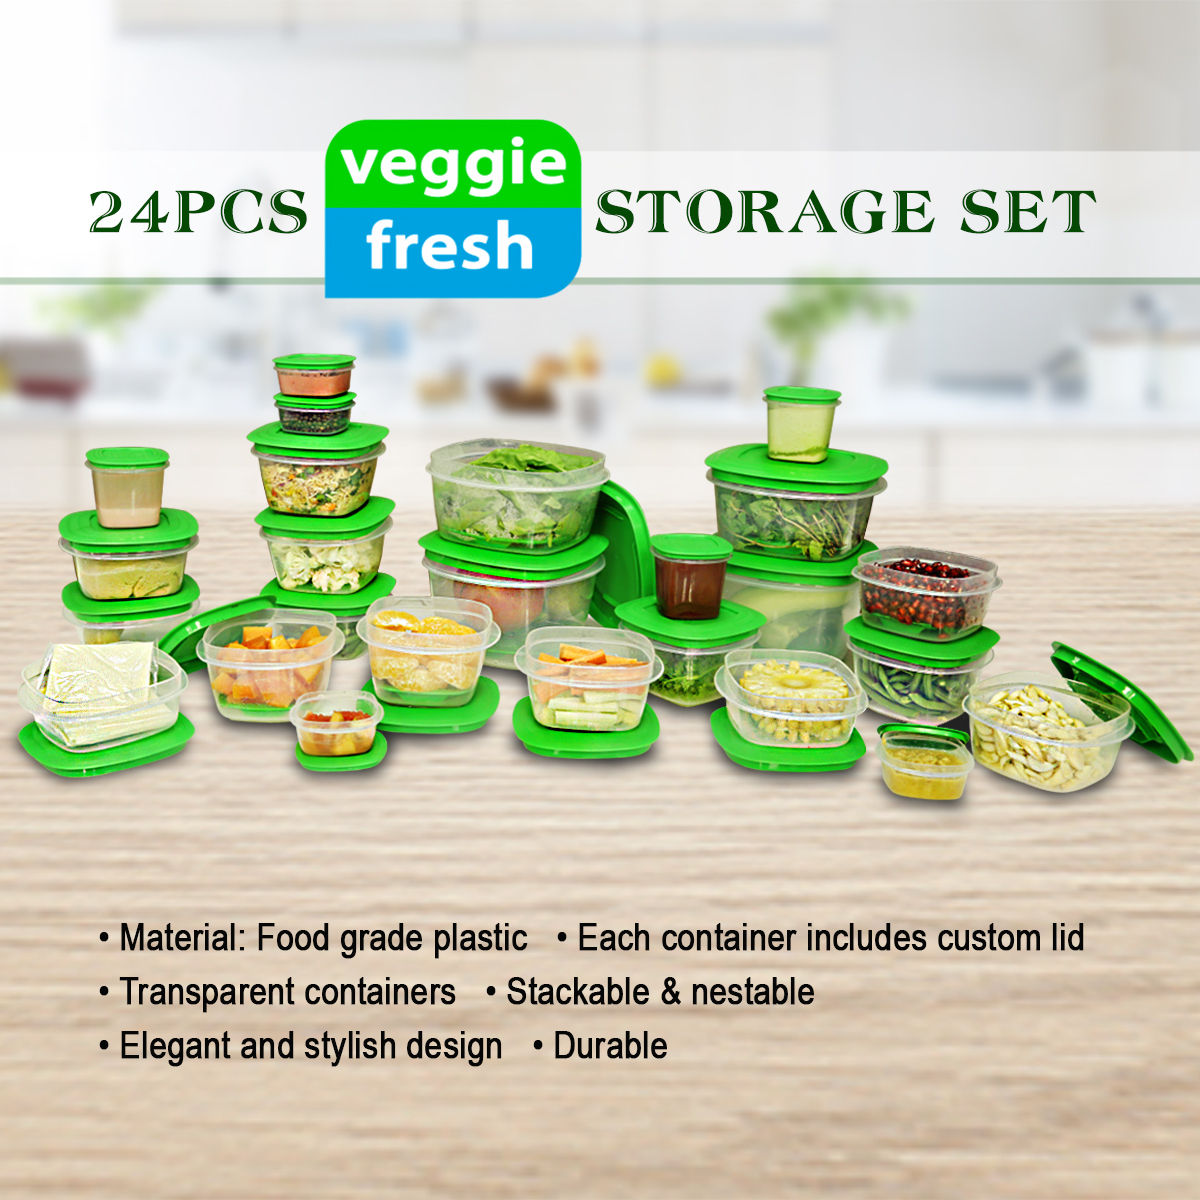 Buy 24 Pcs Veggie Fresh Storage Set Online At Best Price In India On